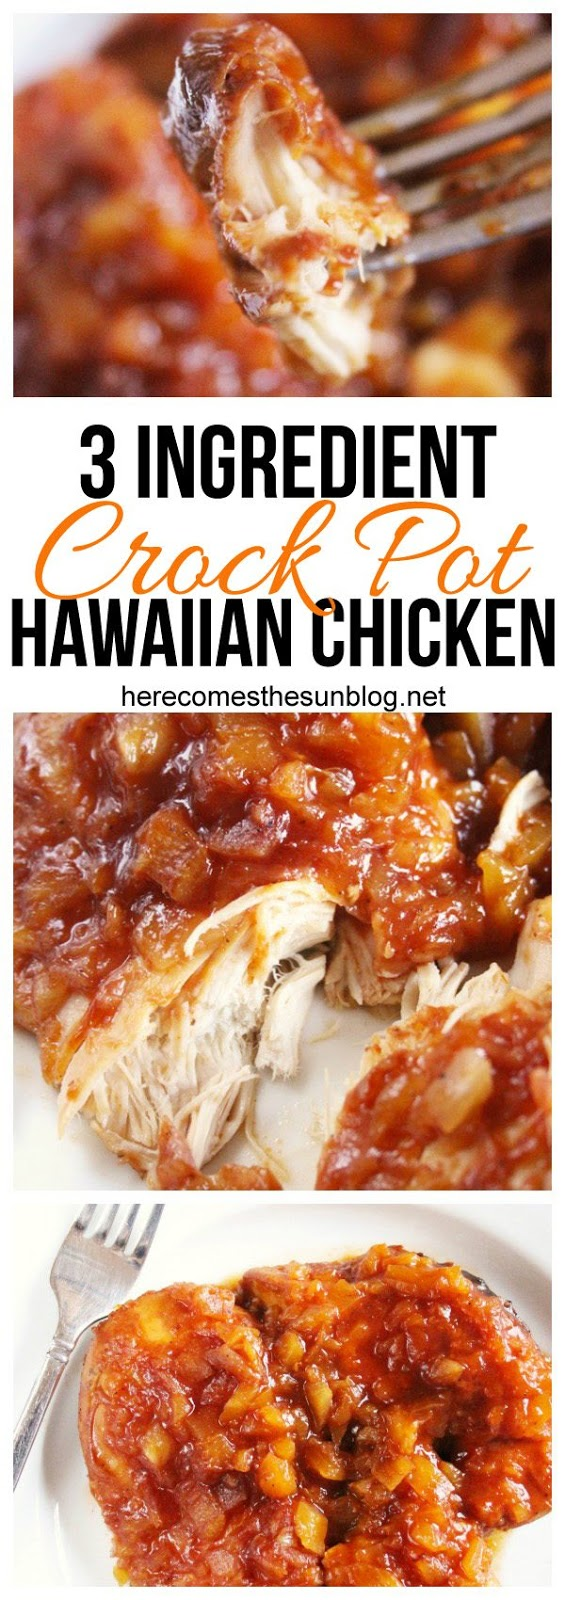 3 INGREDIENT HAWAIIAN CHICKEN